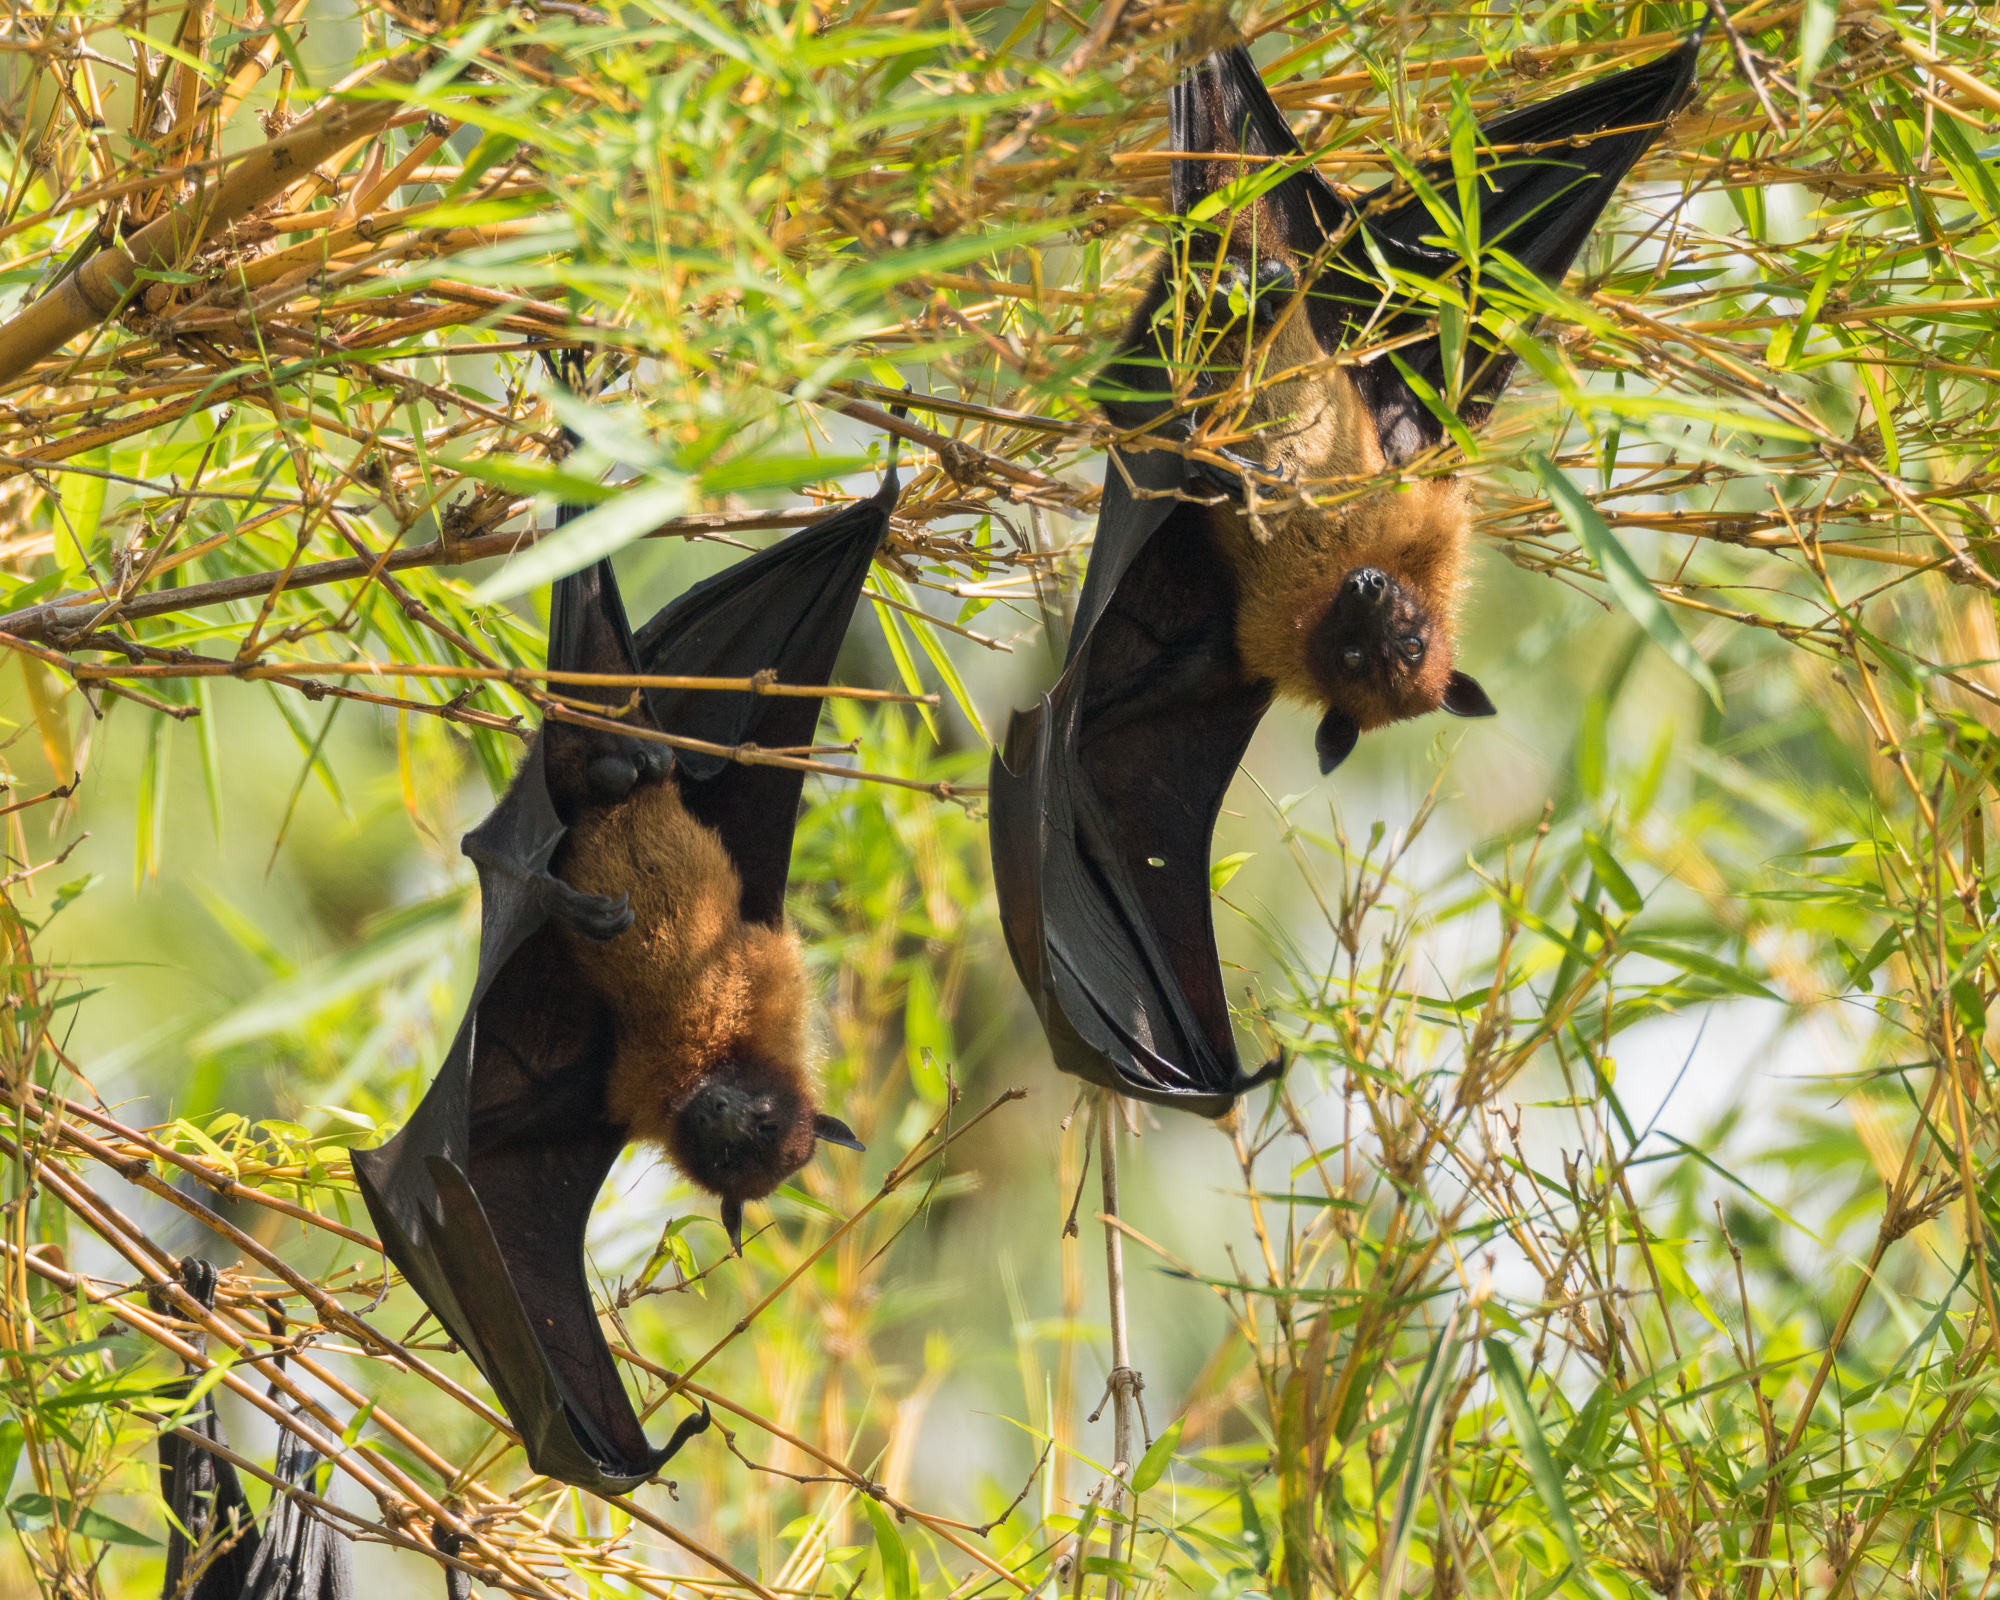 Several flying fox fruit bats hang upside down from a tree, resting through the hot day, Ranganathittu Bird Sanctuary, India